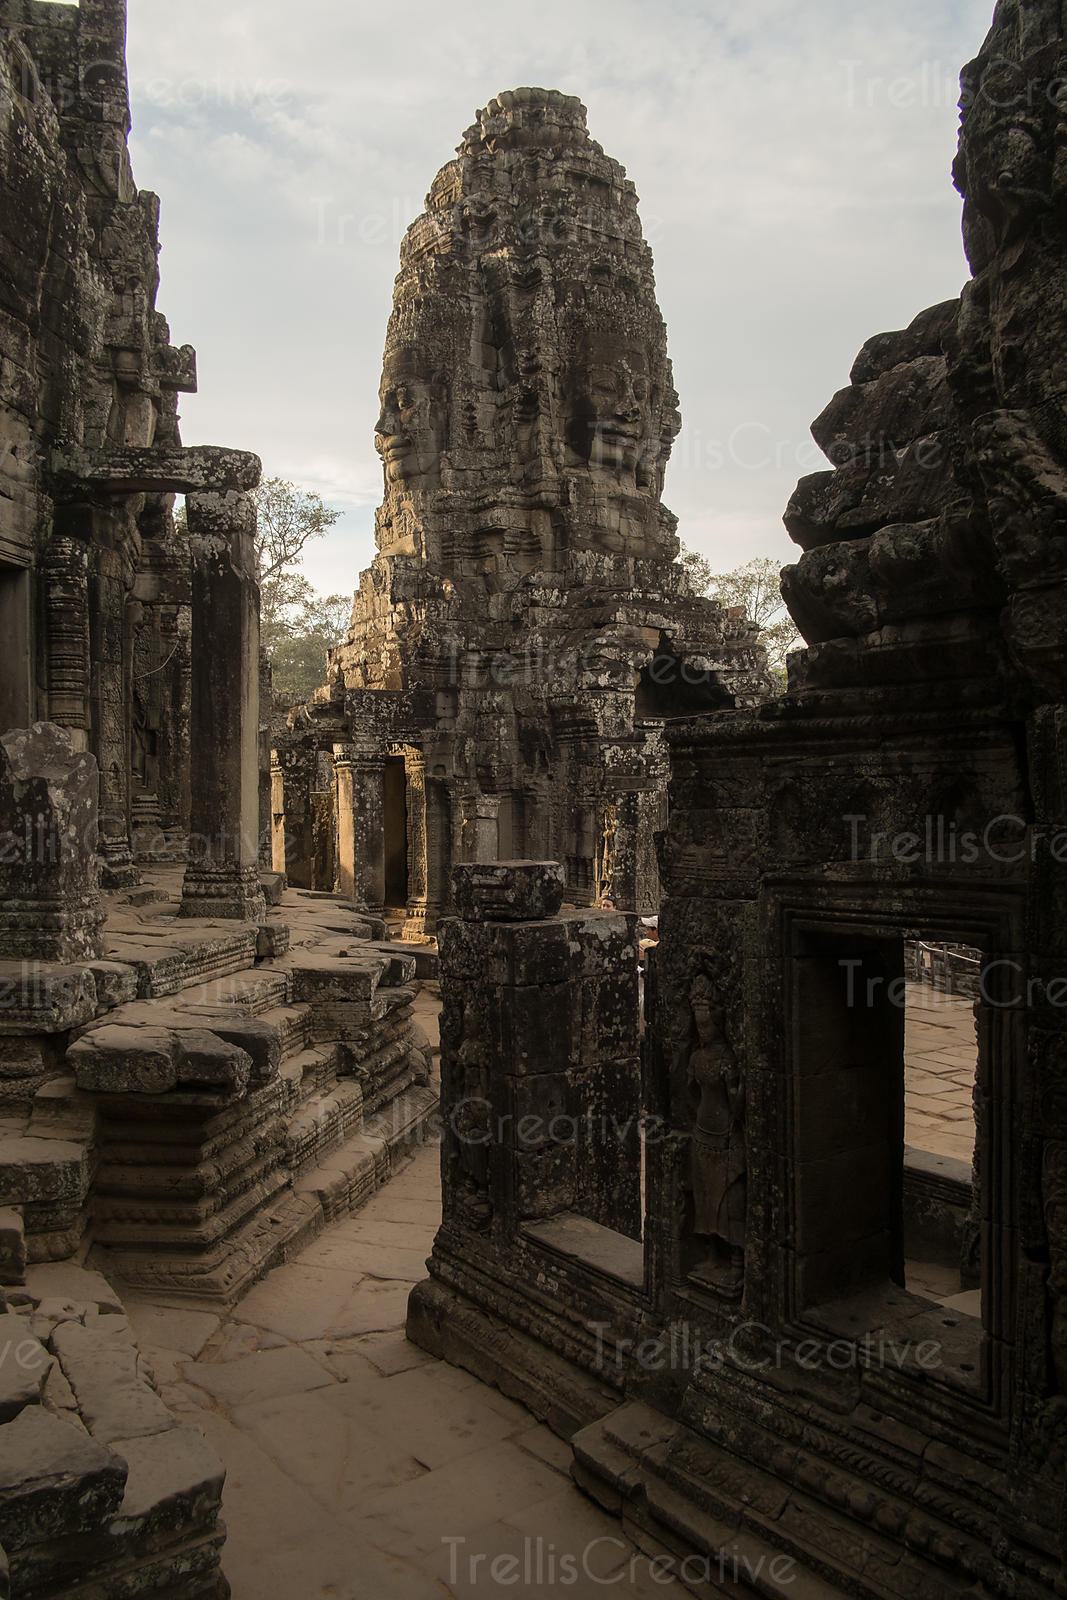 Buddha carvings on temples, Angkor Wat, Cambodia